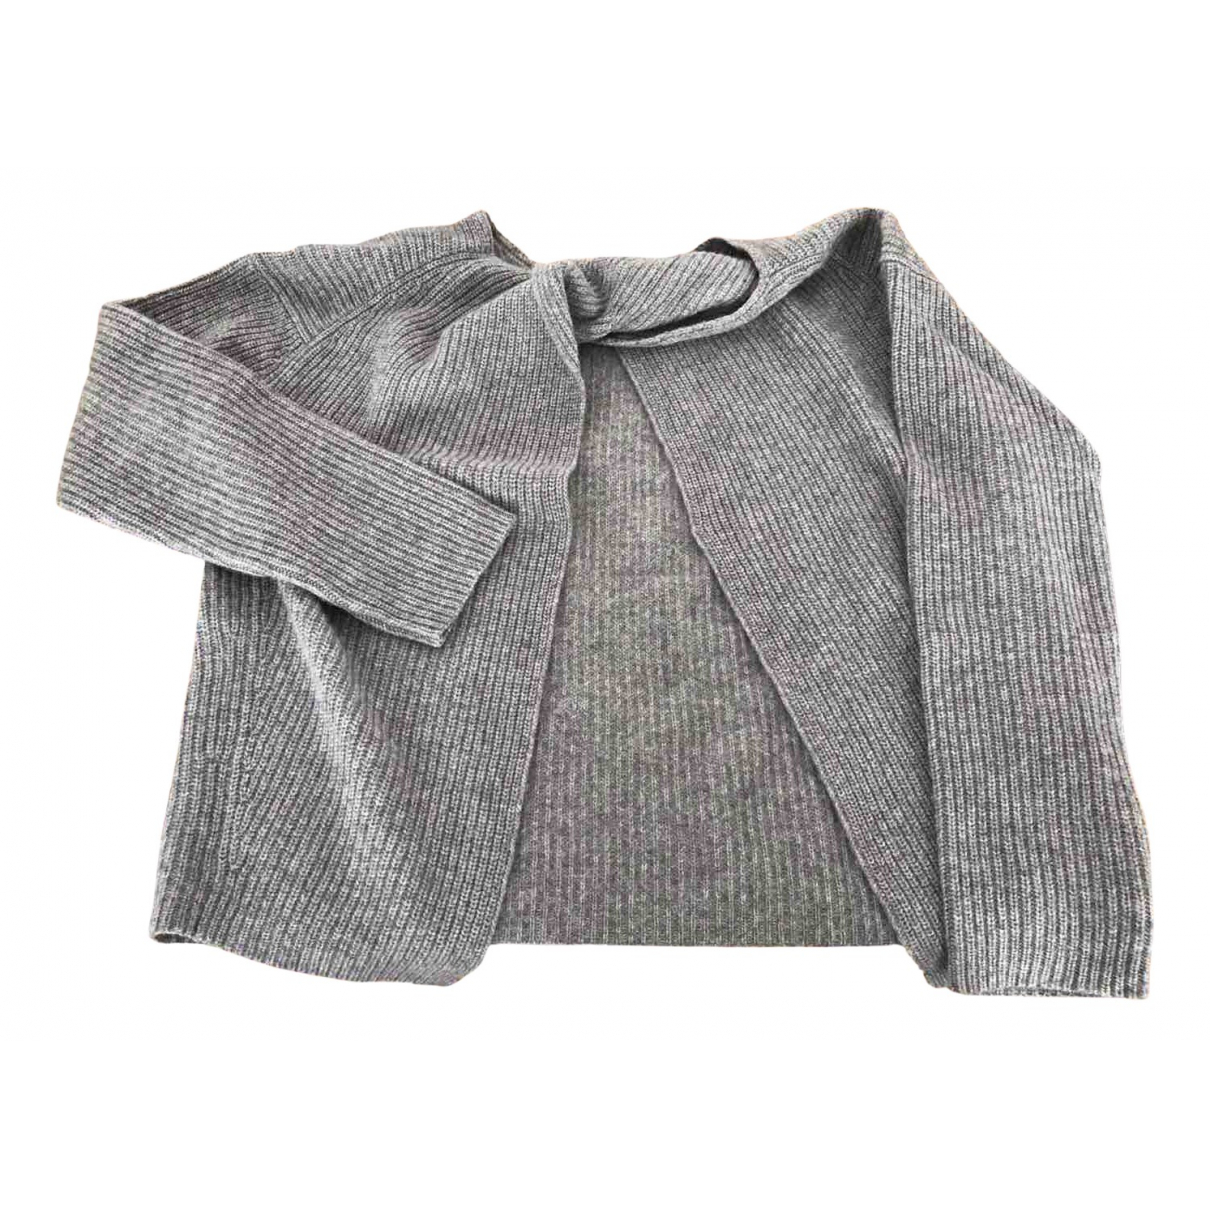 Theory N Grey Cashmere Knitwear for Women S International